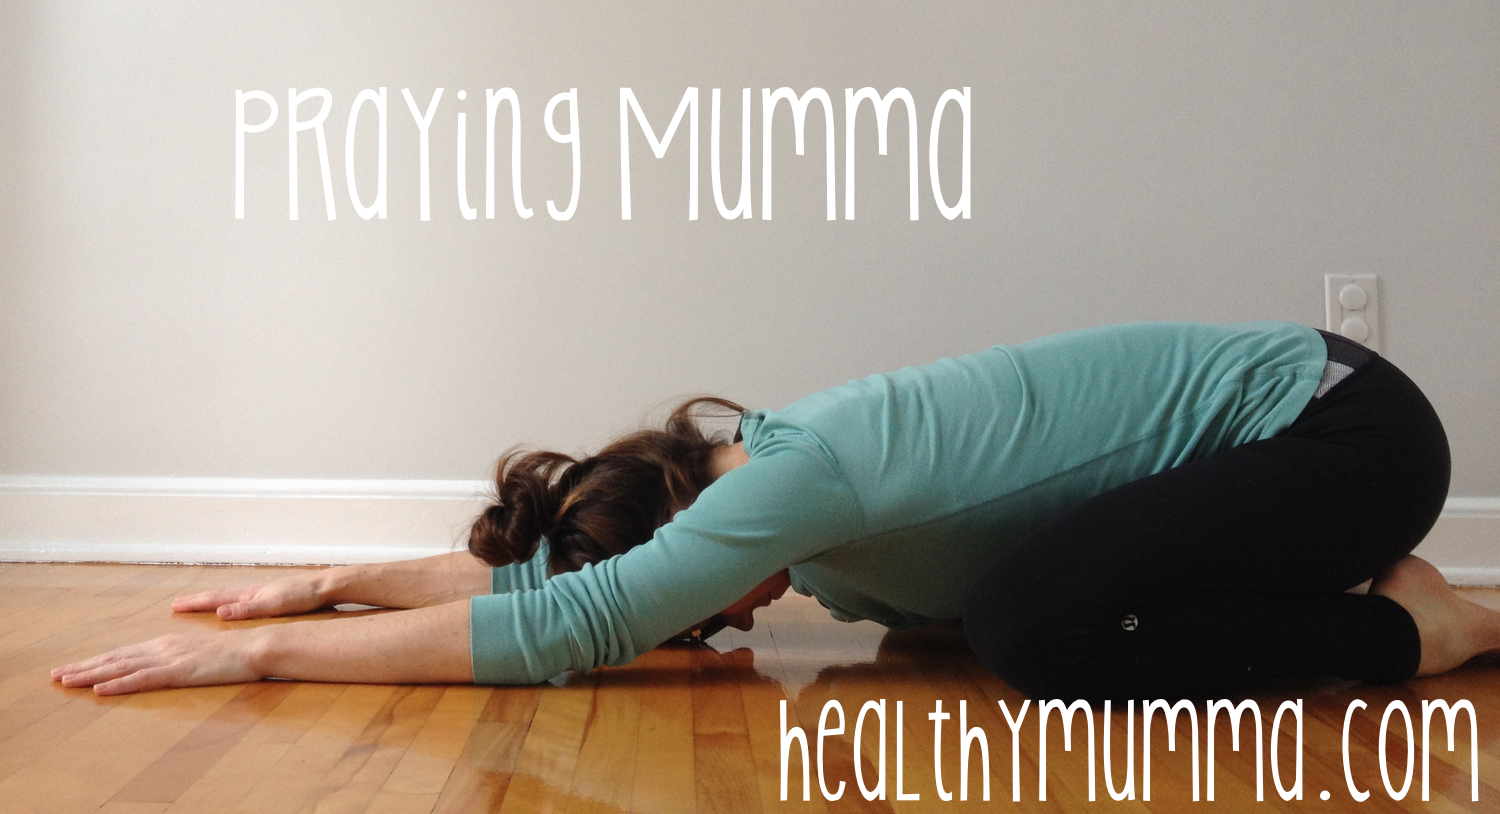 Child's pose is a great exercise to help relieve back pain from poor nursing posture.